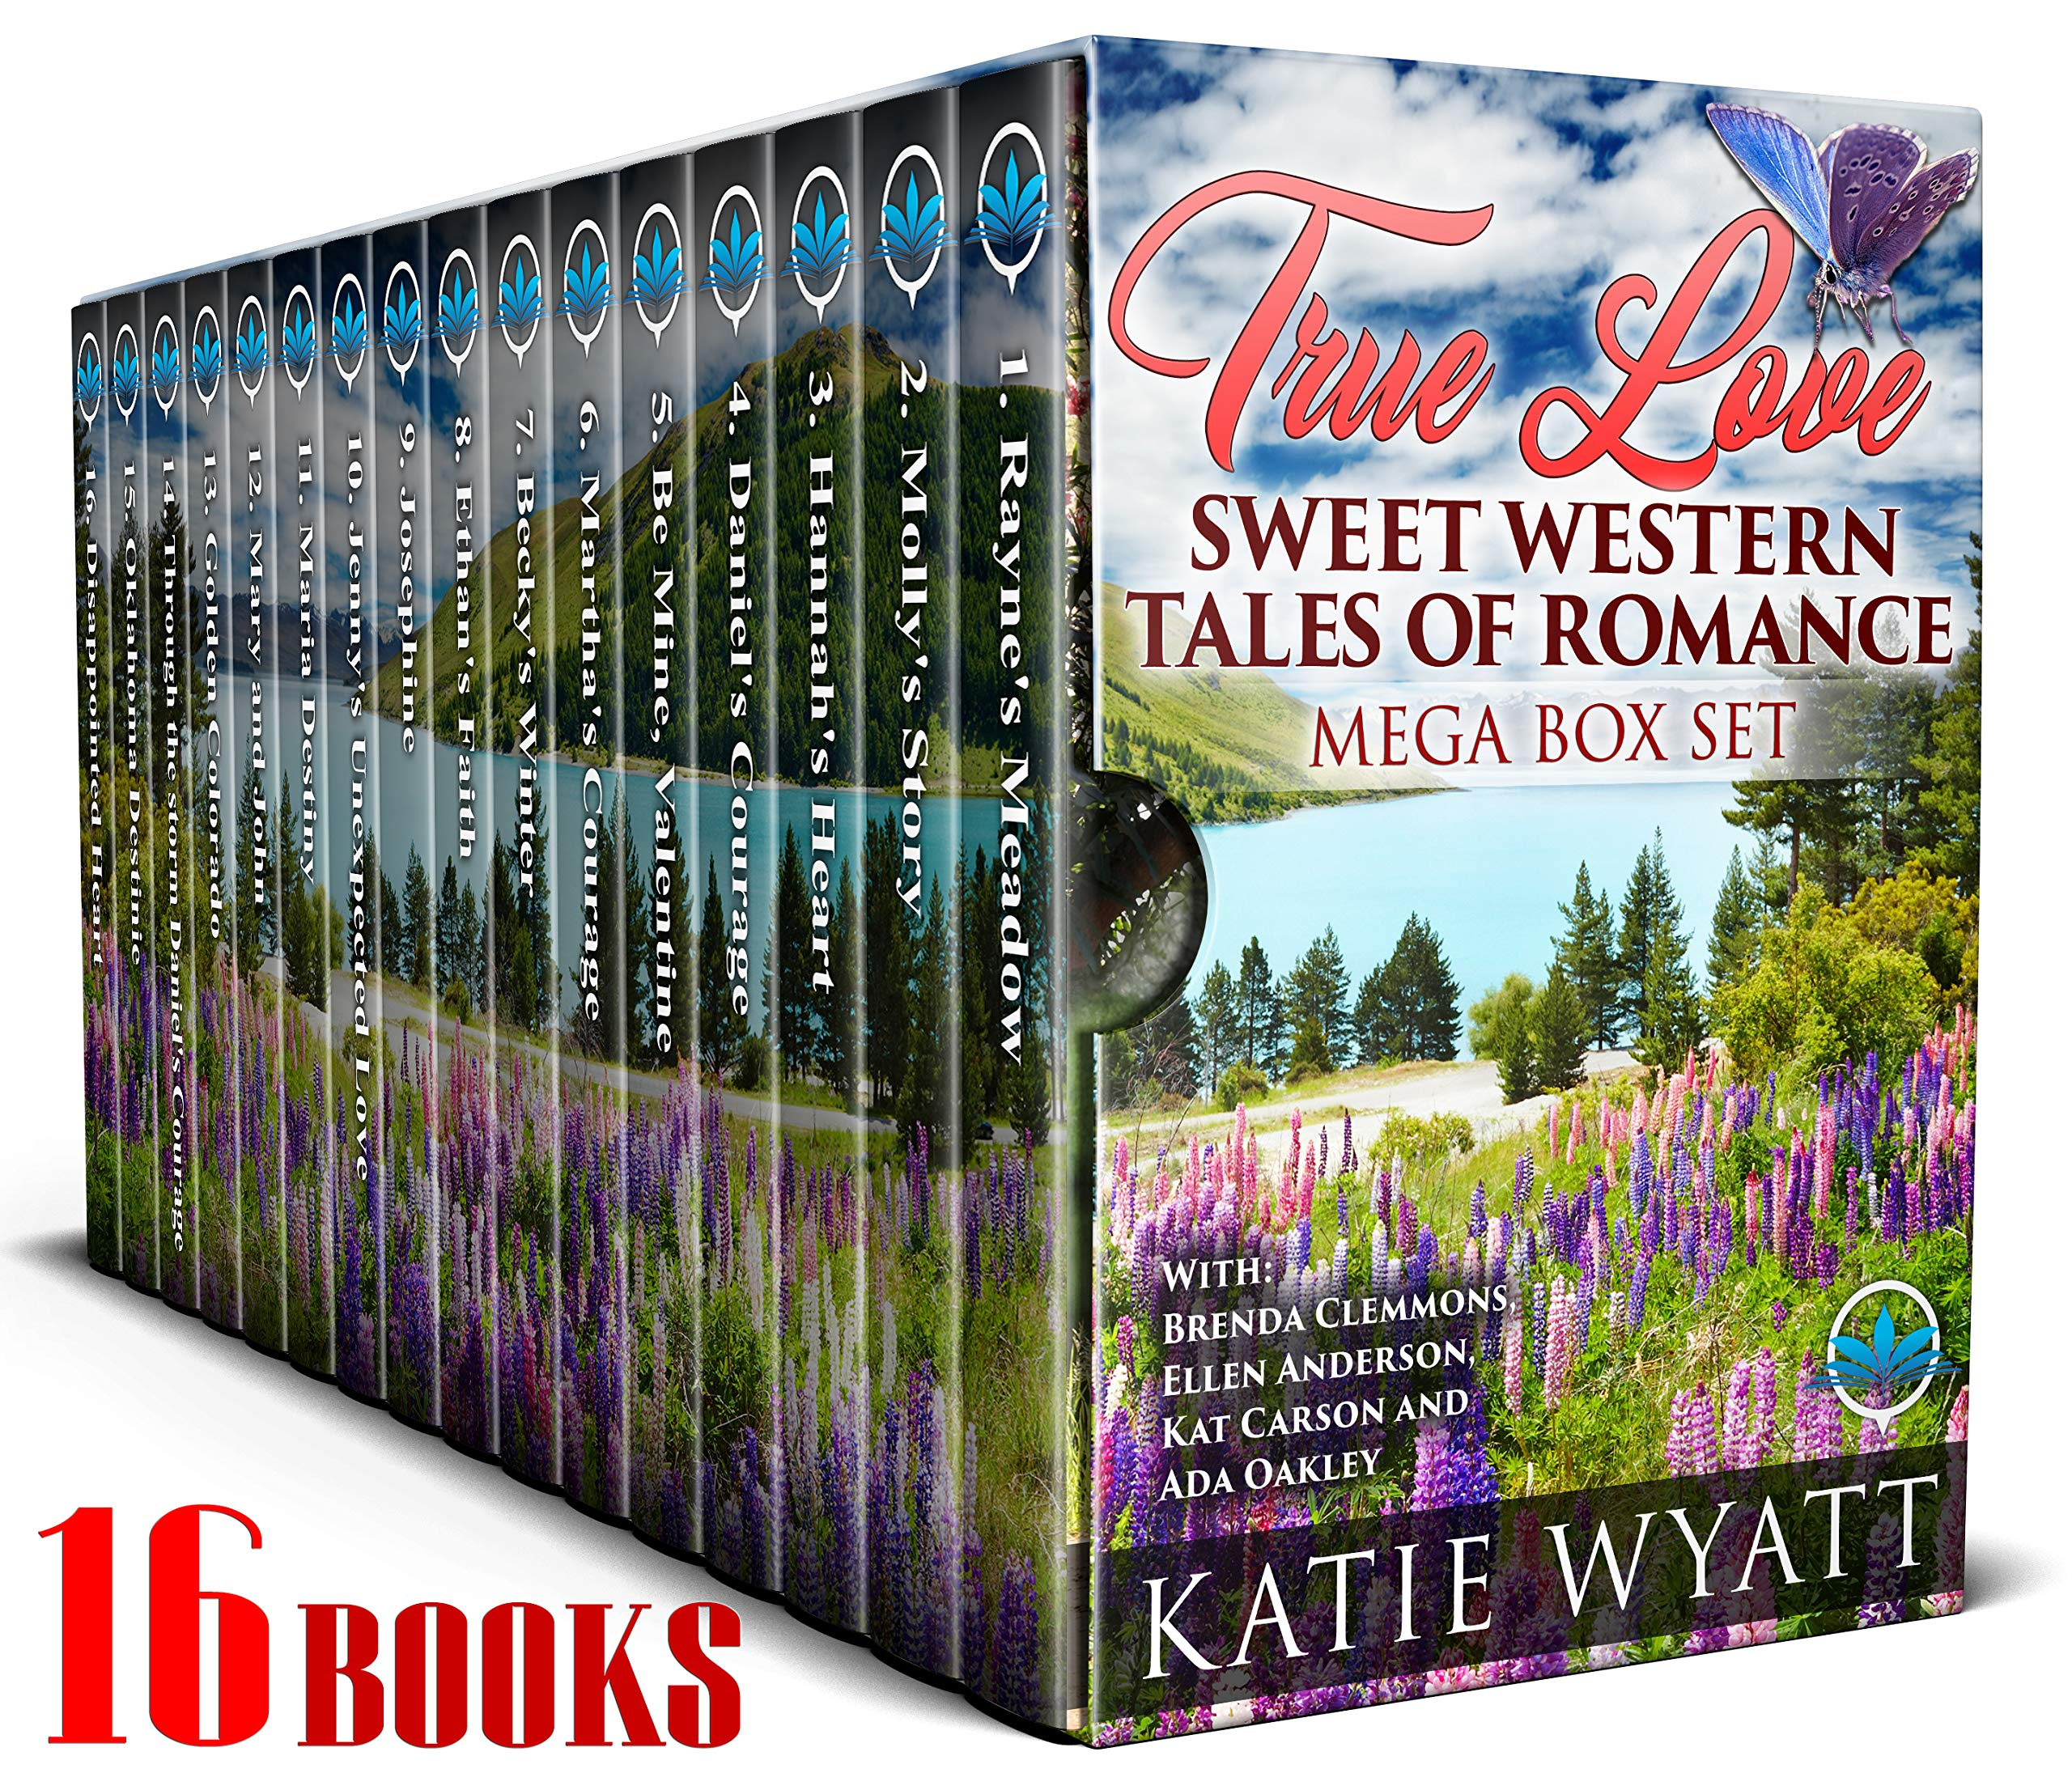 True Love Sweet Western Tales of Romance: 16 Books (Mega Box Set Series Book 15)